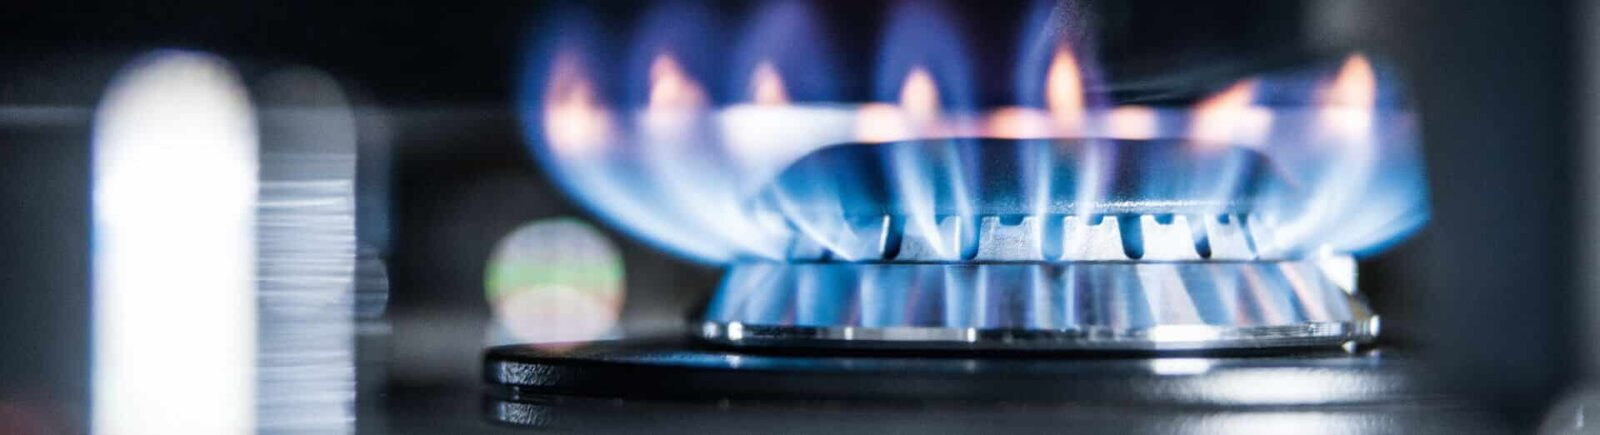 Buying Guide for Auto-Ignition Gas Stove